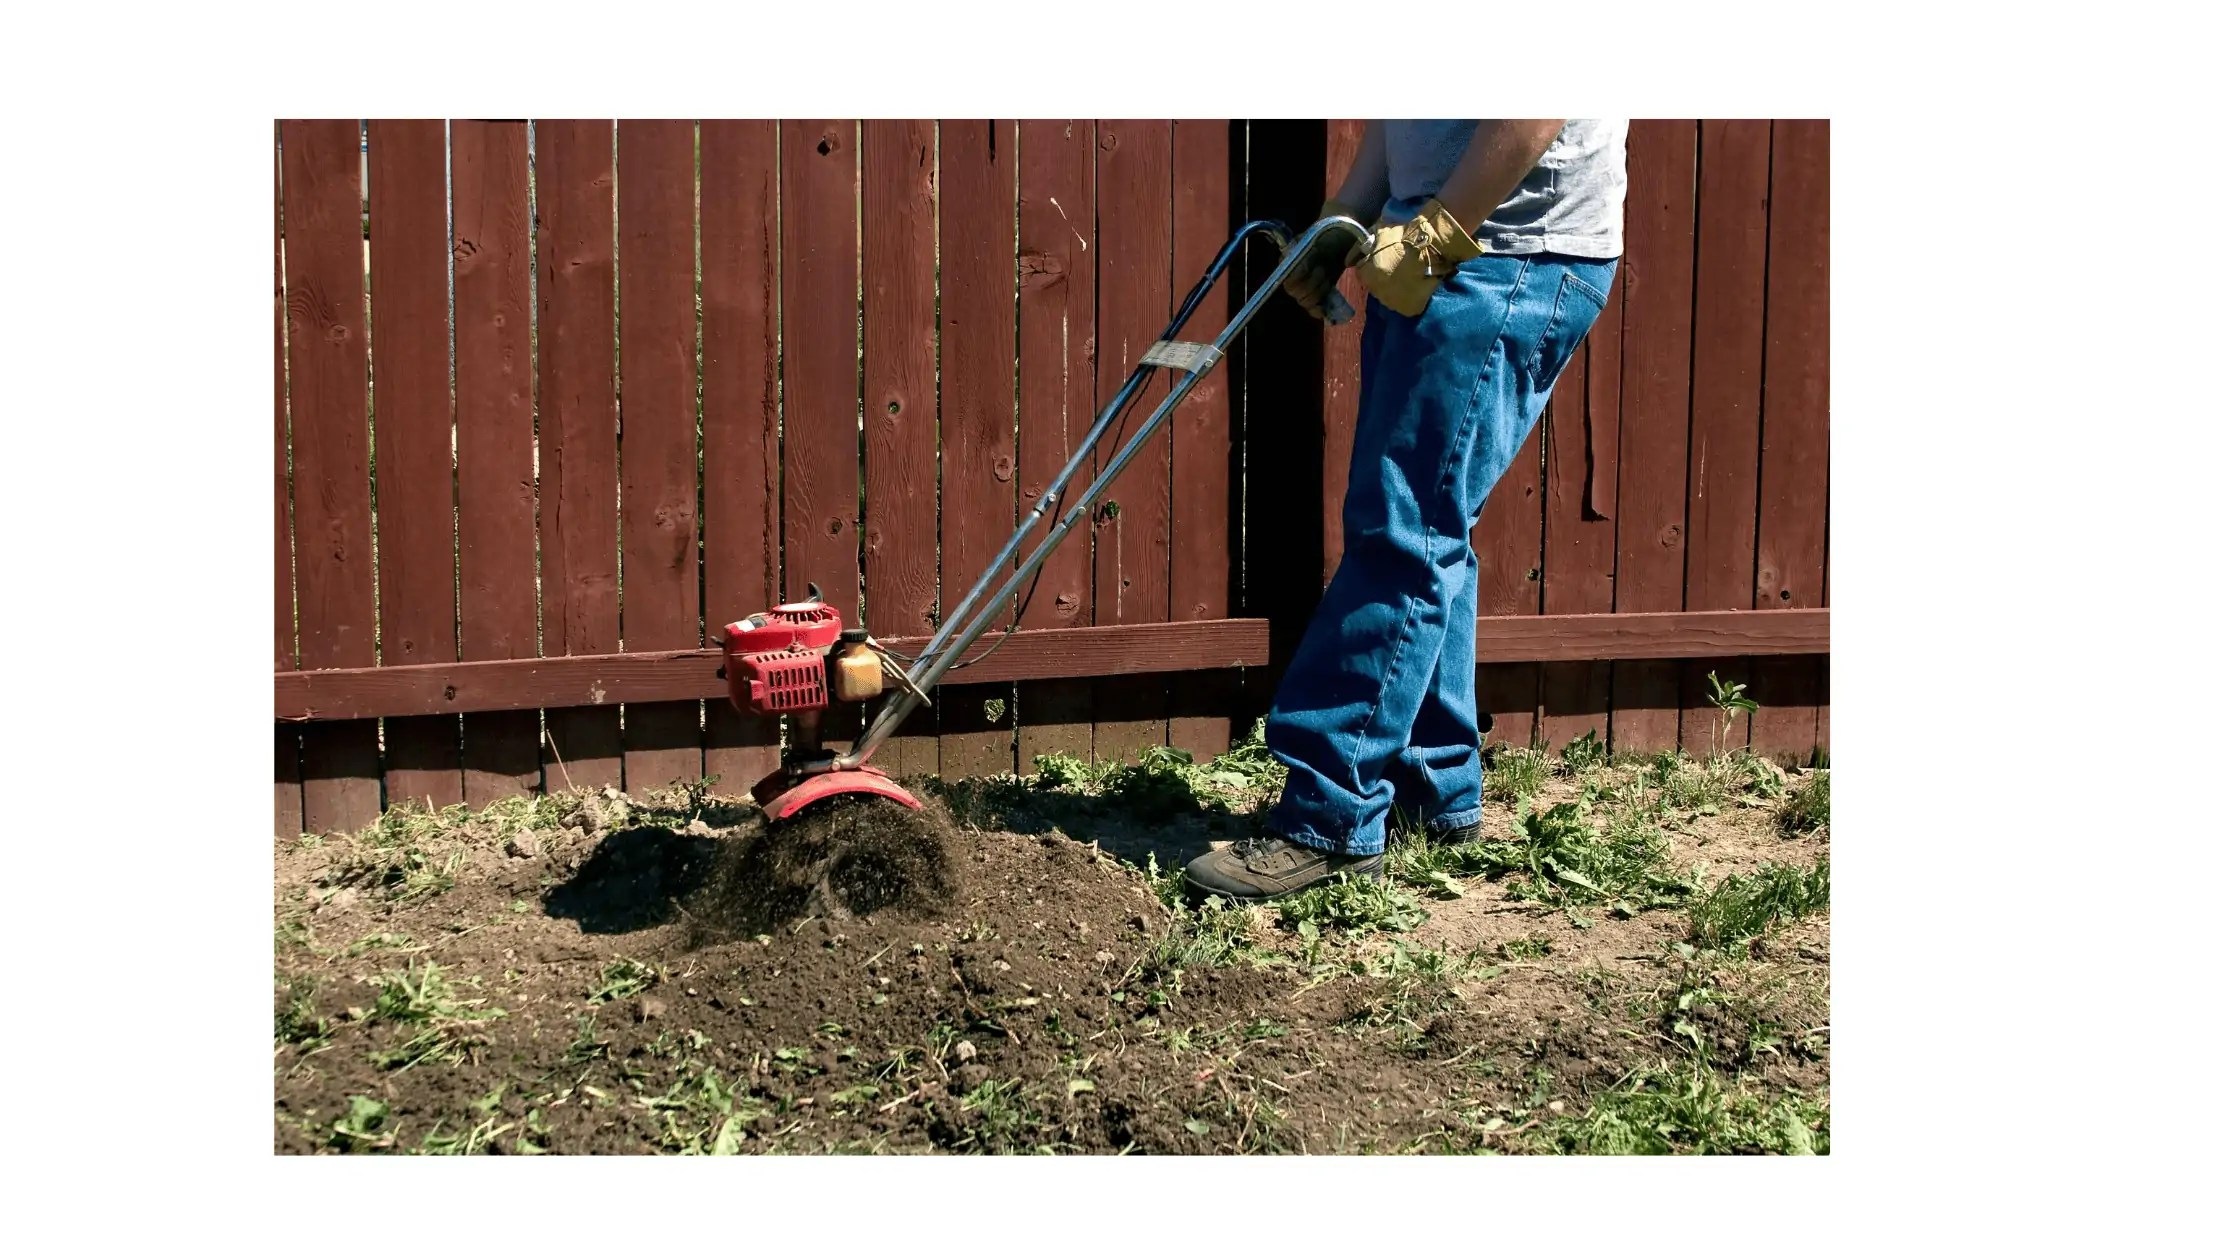 Man tilling garden with small tiller